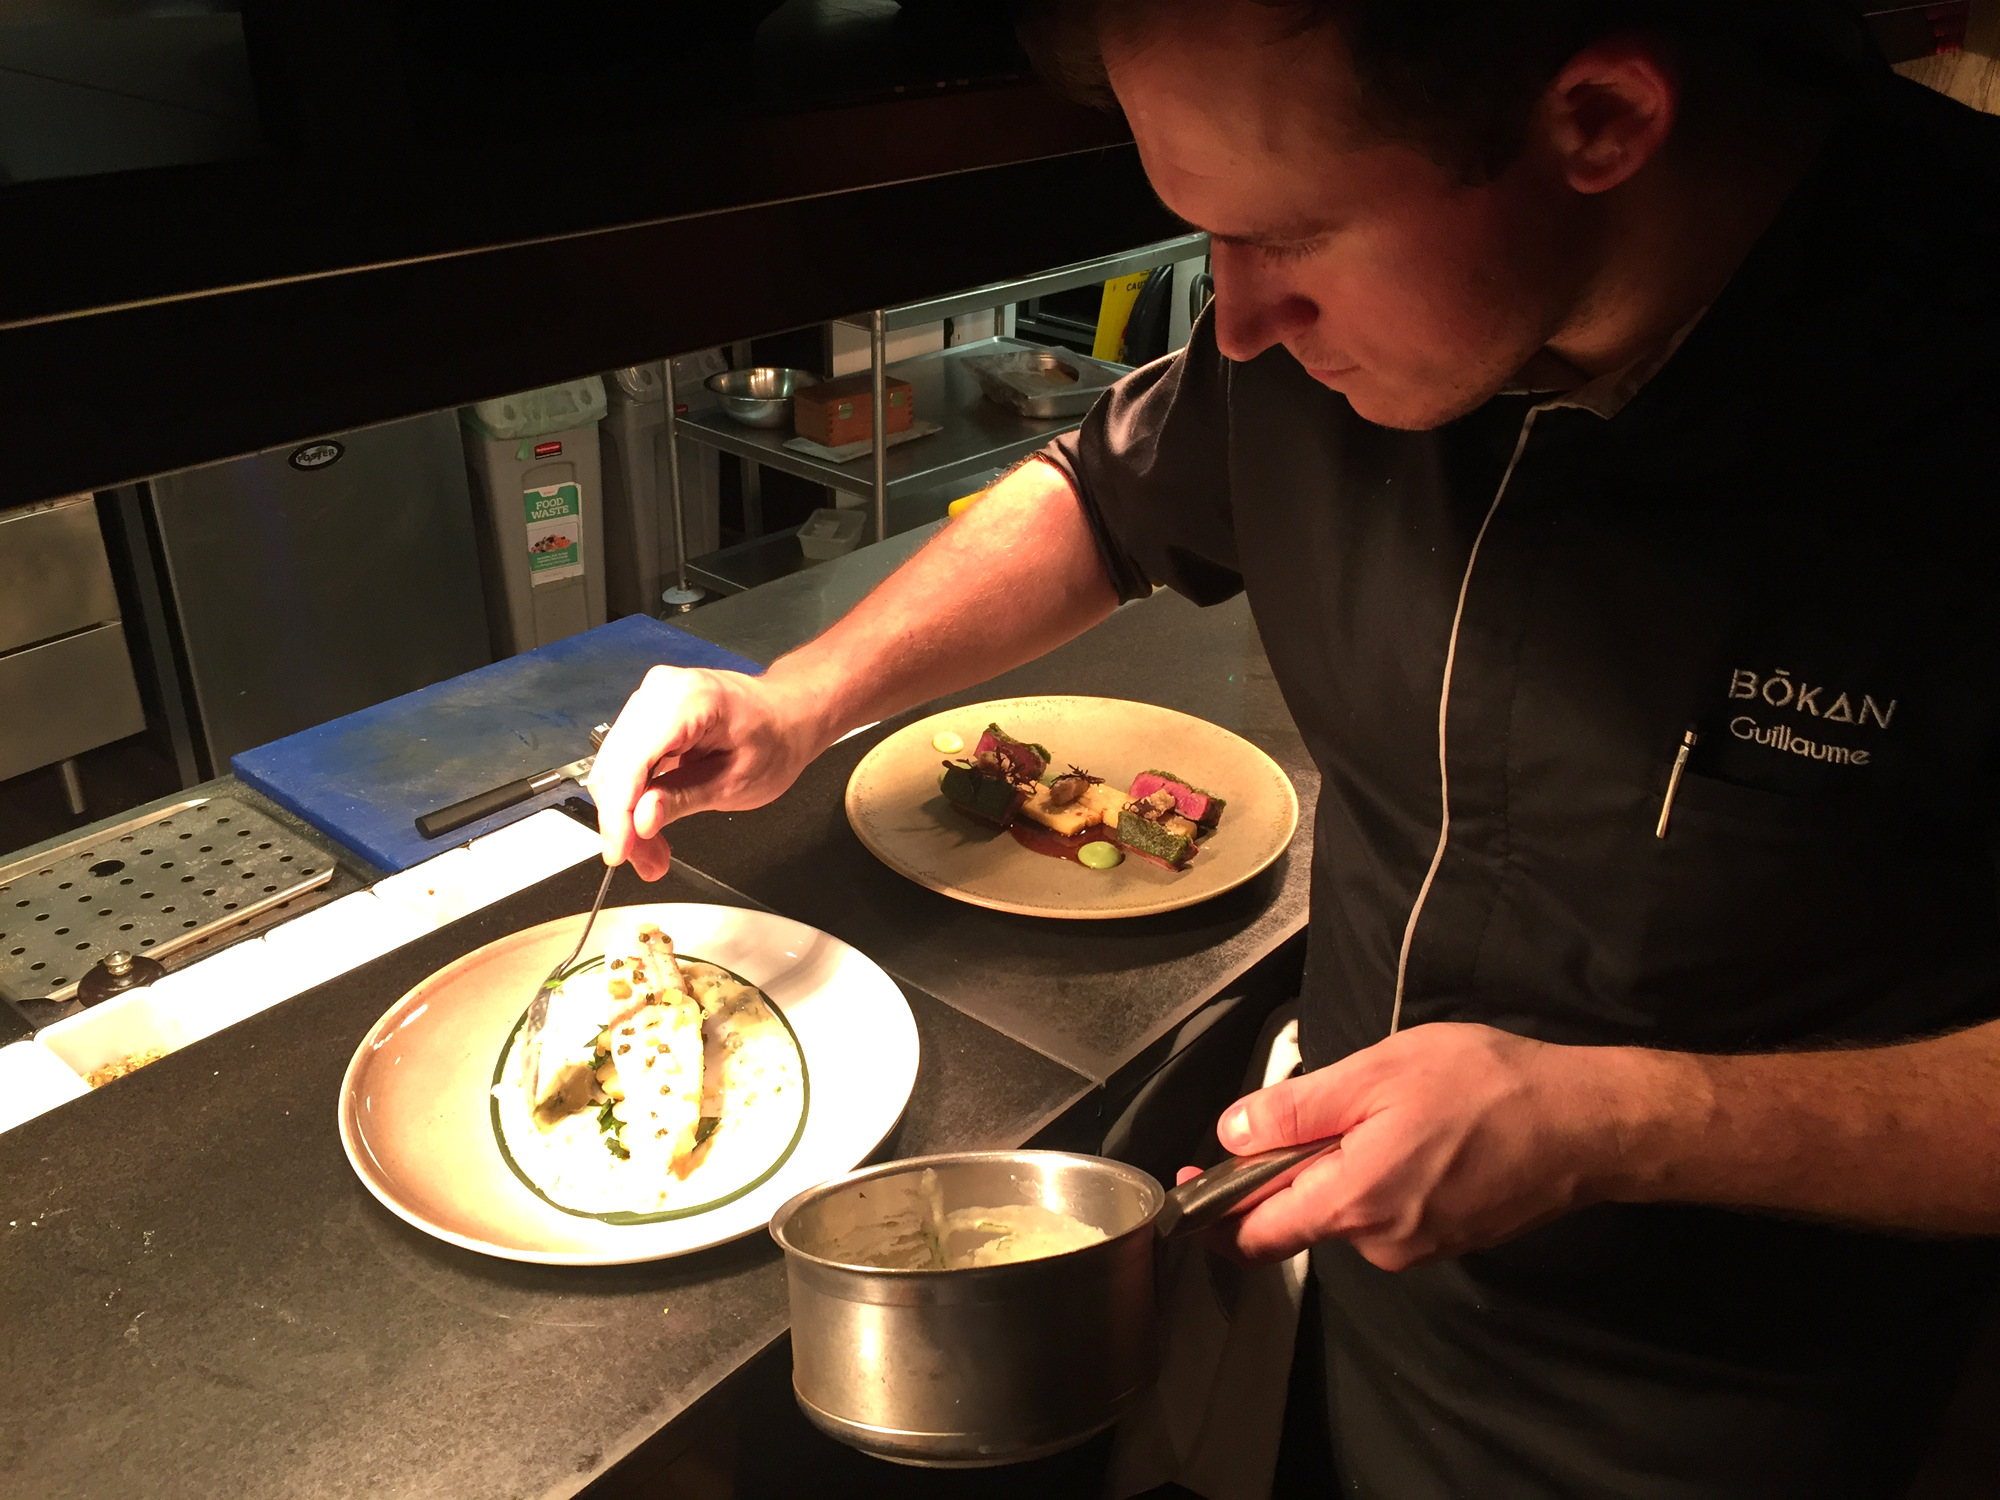 Guillaume plating at the pass